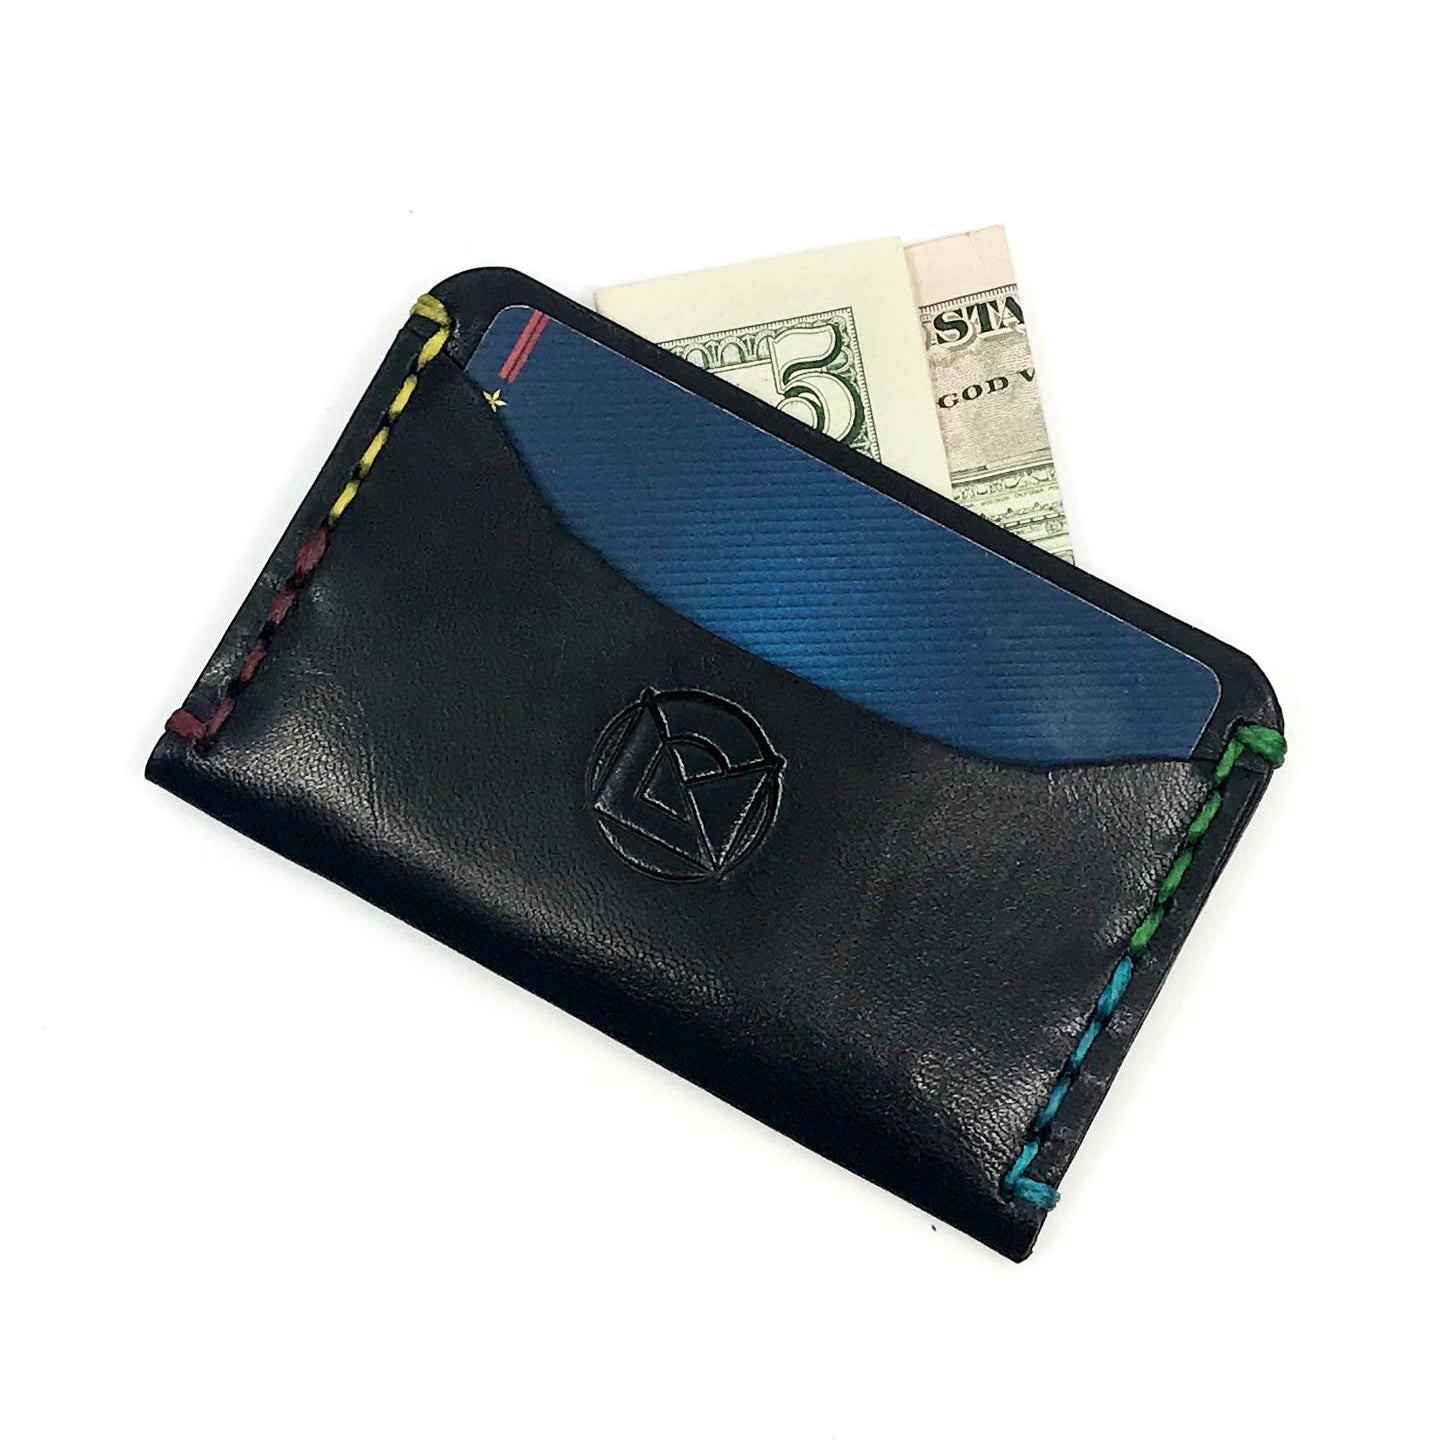 Horizontal Minimalist Wallet - Black Rainbow